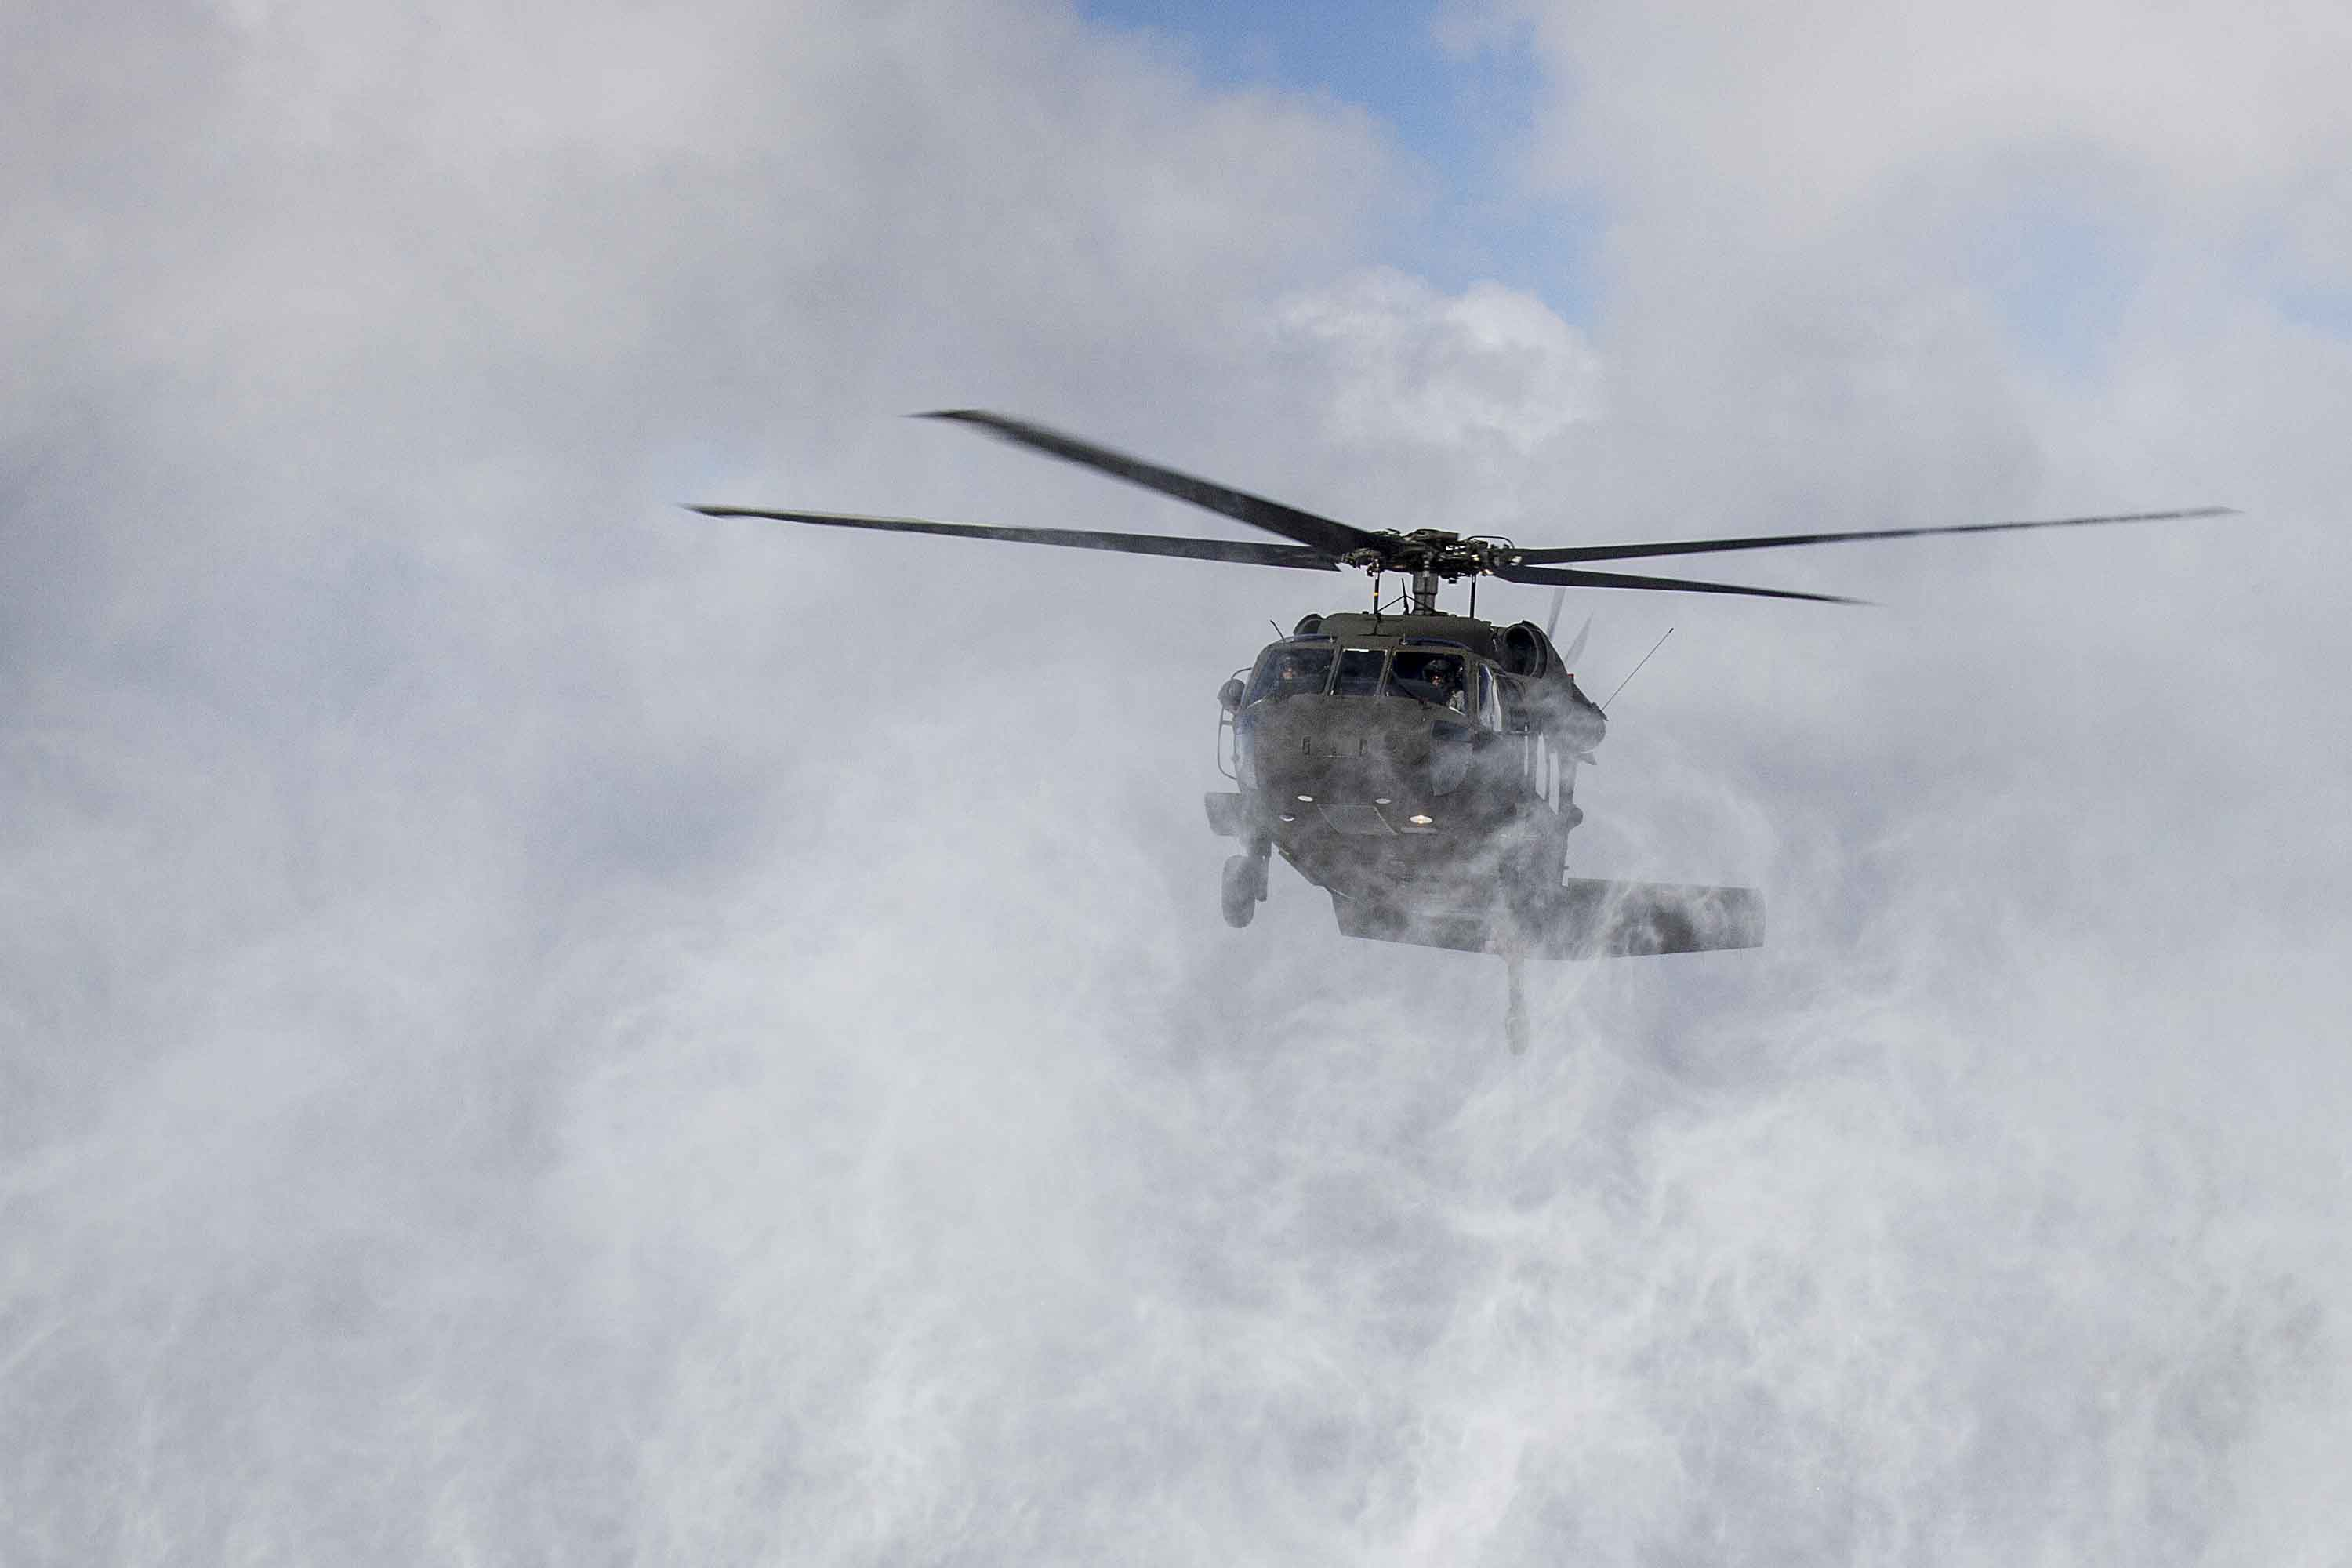 Climber Rescued by Black Hawk Helo After Falling 200 Feet down Mountain